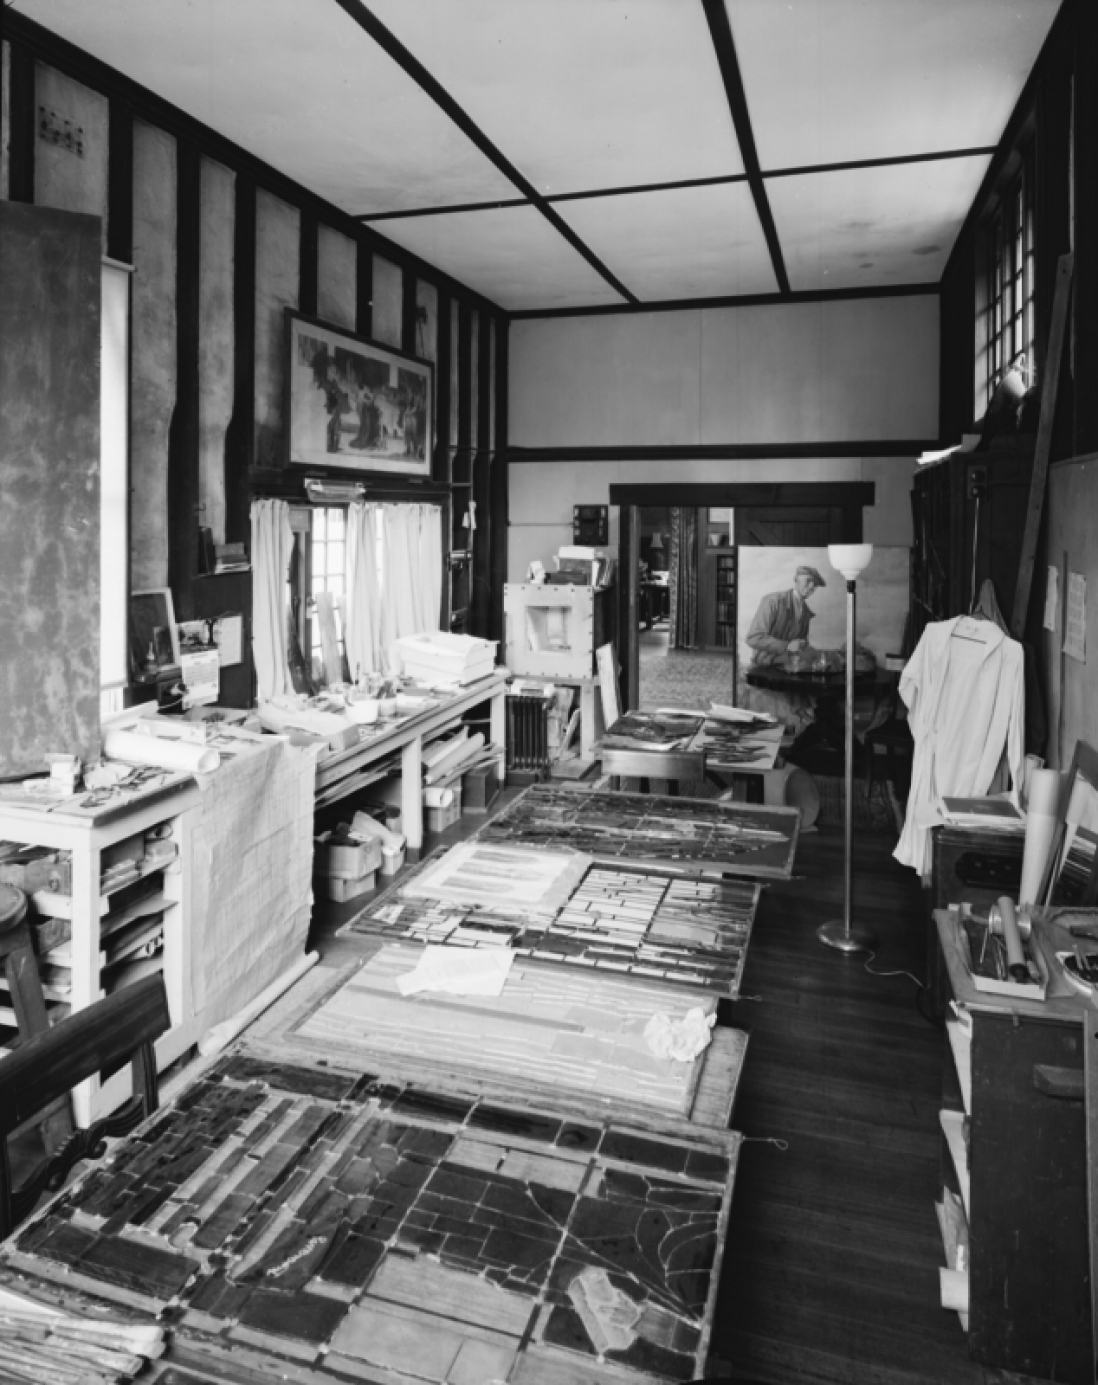 Stained glass studio Napier Waller residence, Ivanhoe, Victoria, 1972